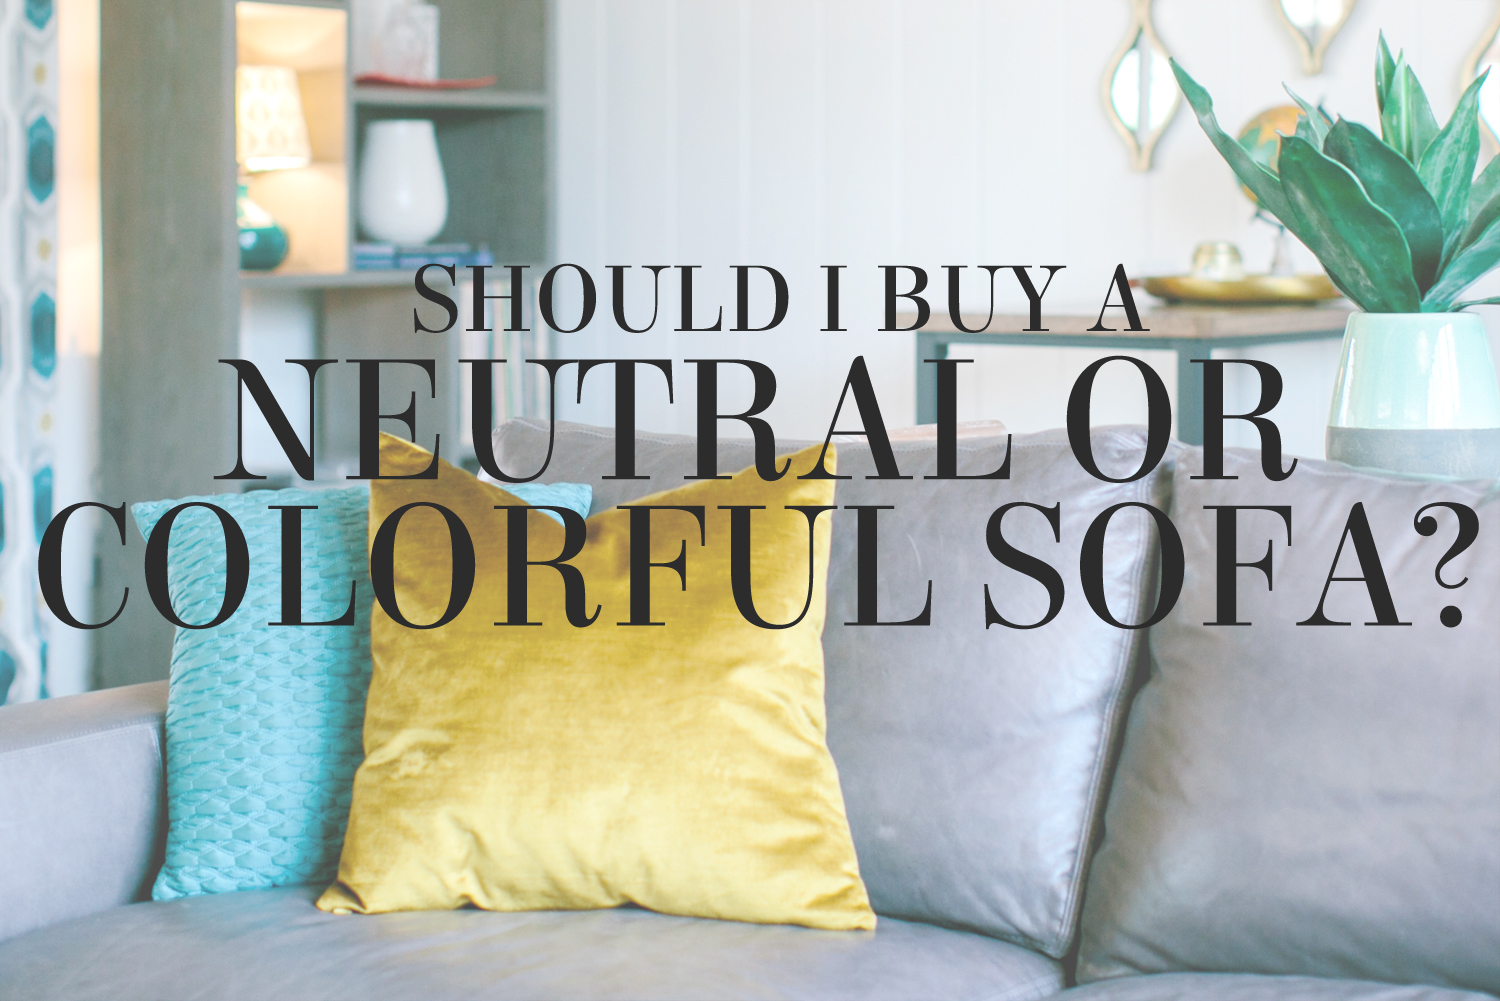 Should I buy a neutral or colorful sofa? Interior Stylist Lesley Myrick has tips on choosing the right sofa and making it work in your home.